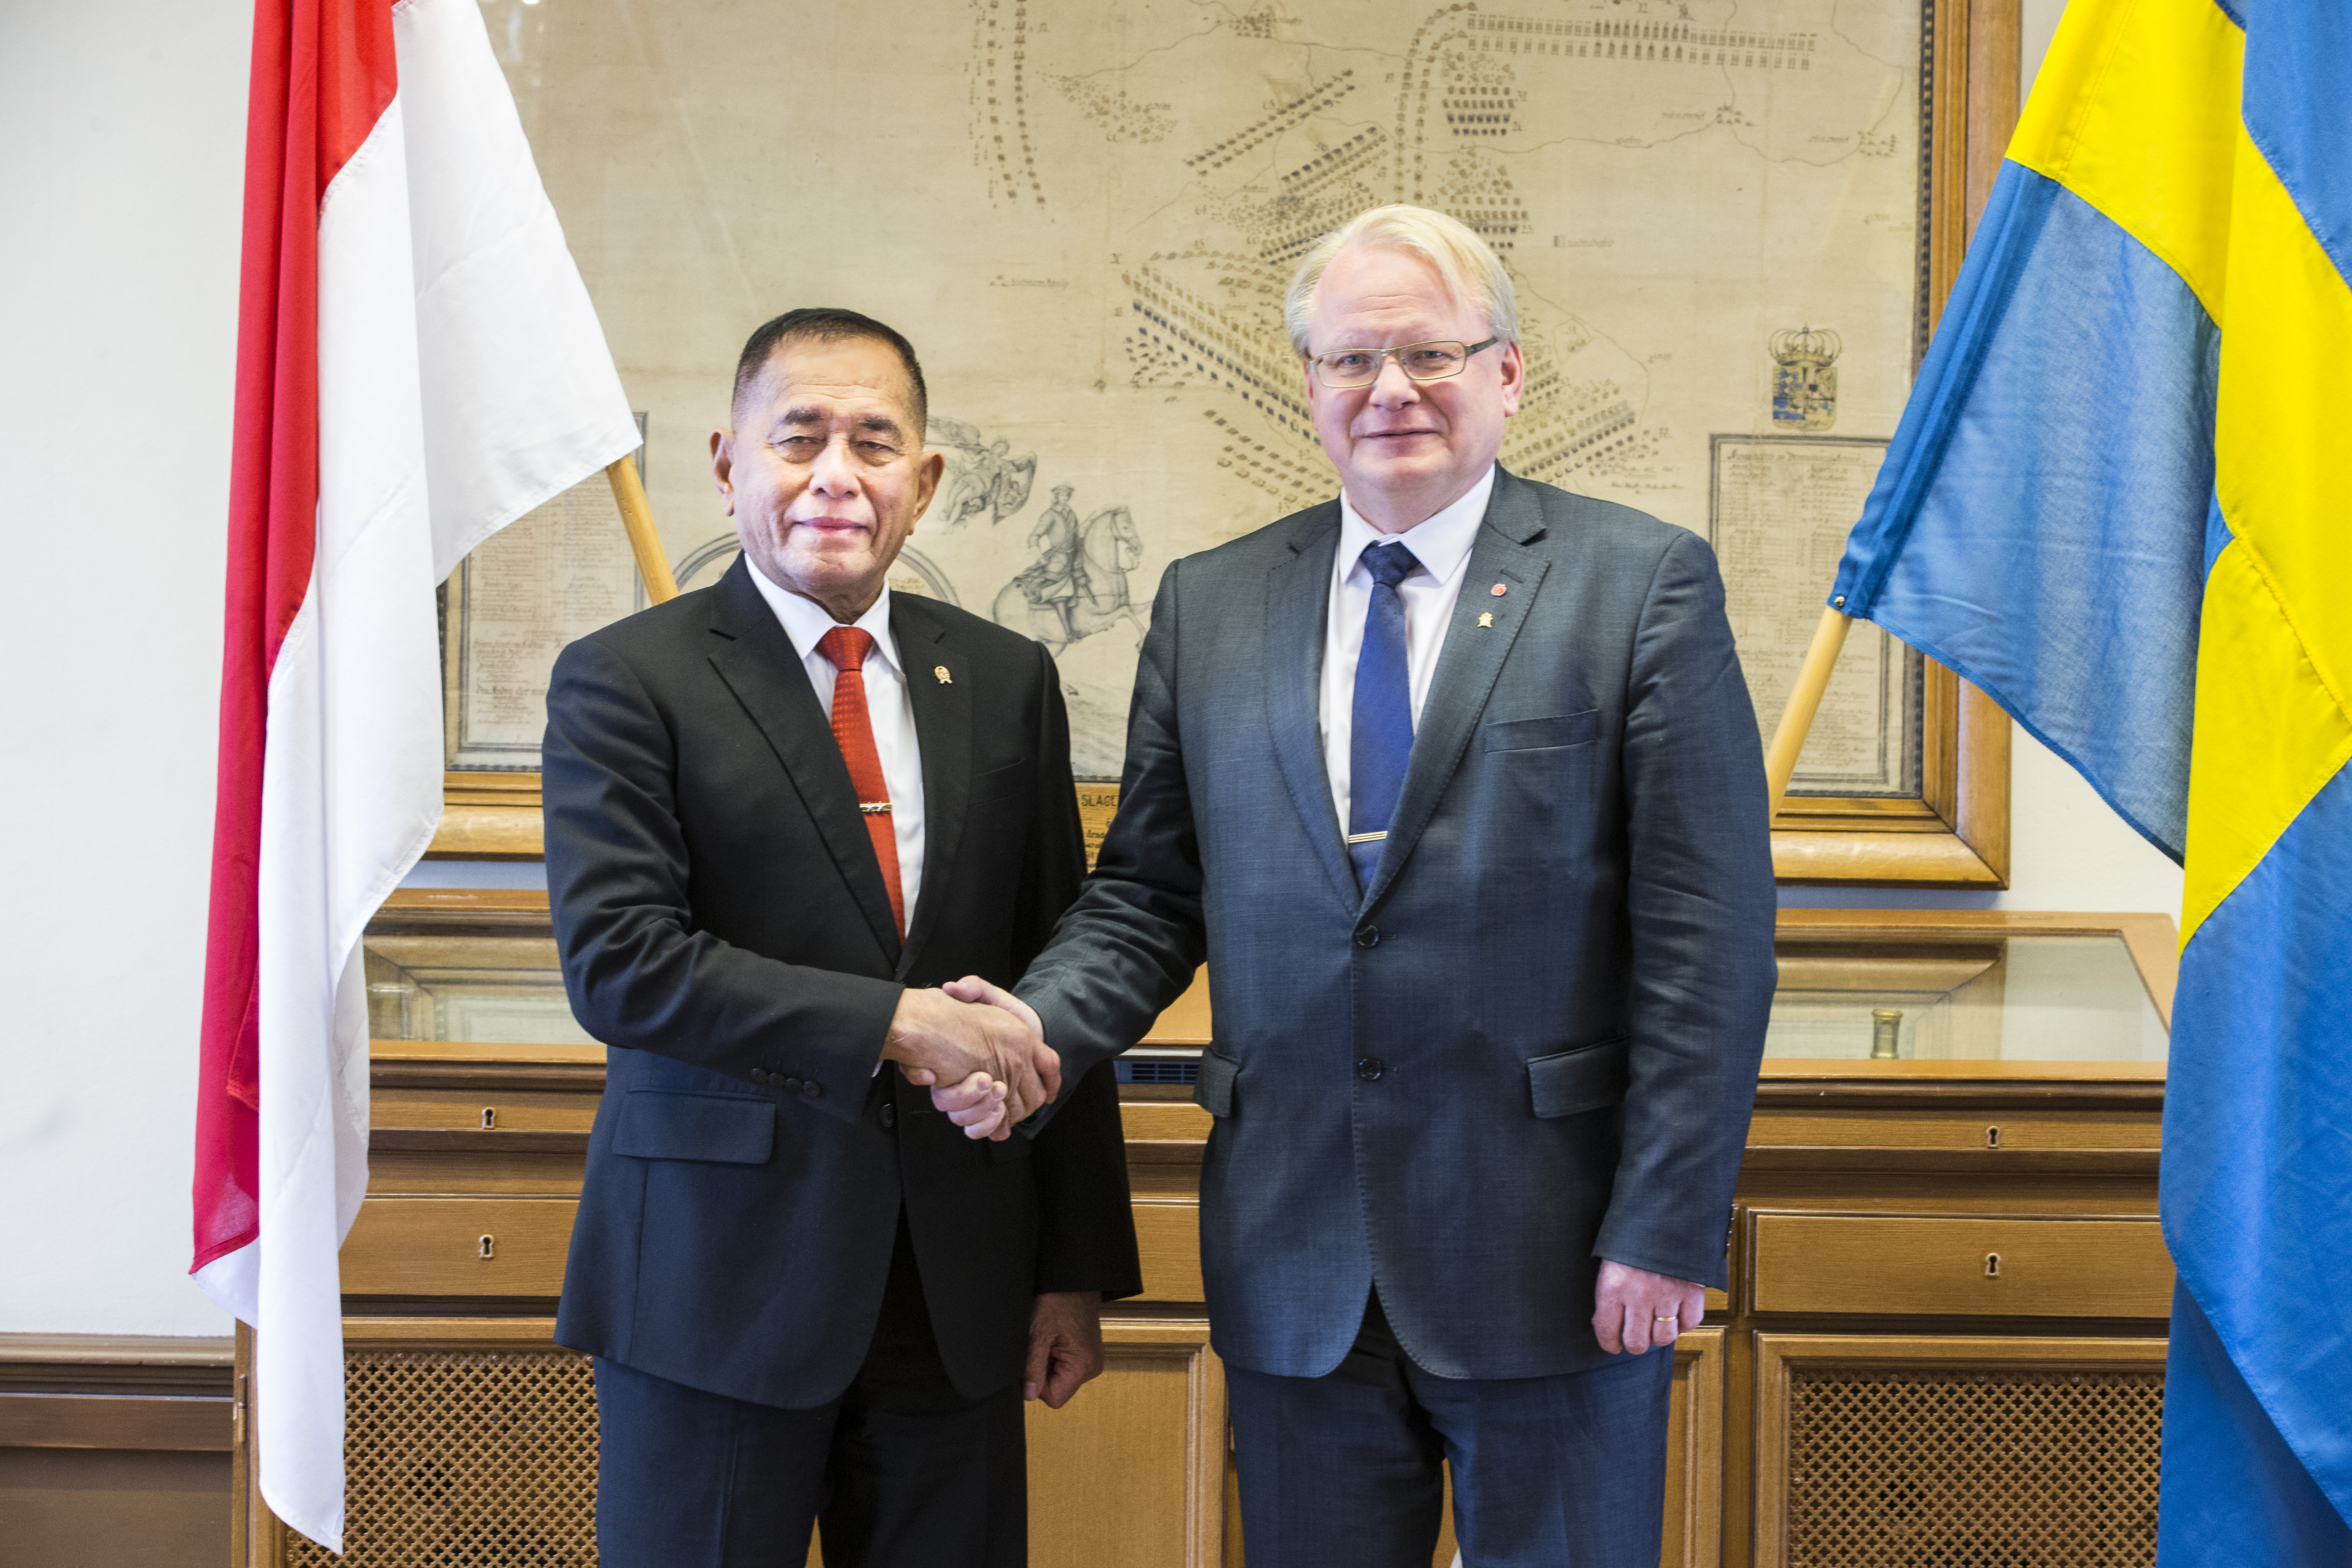 Minister for Defence Peter Hultqvist together with his Indonesian colleague Ryamizard Ryacudu.